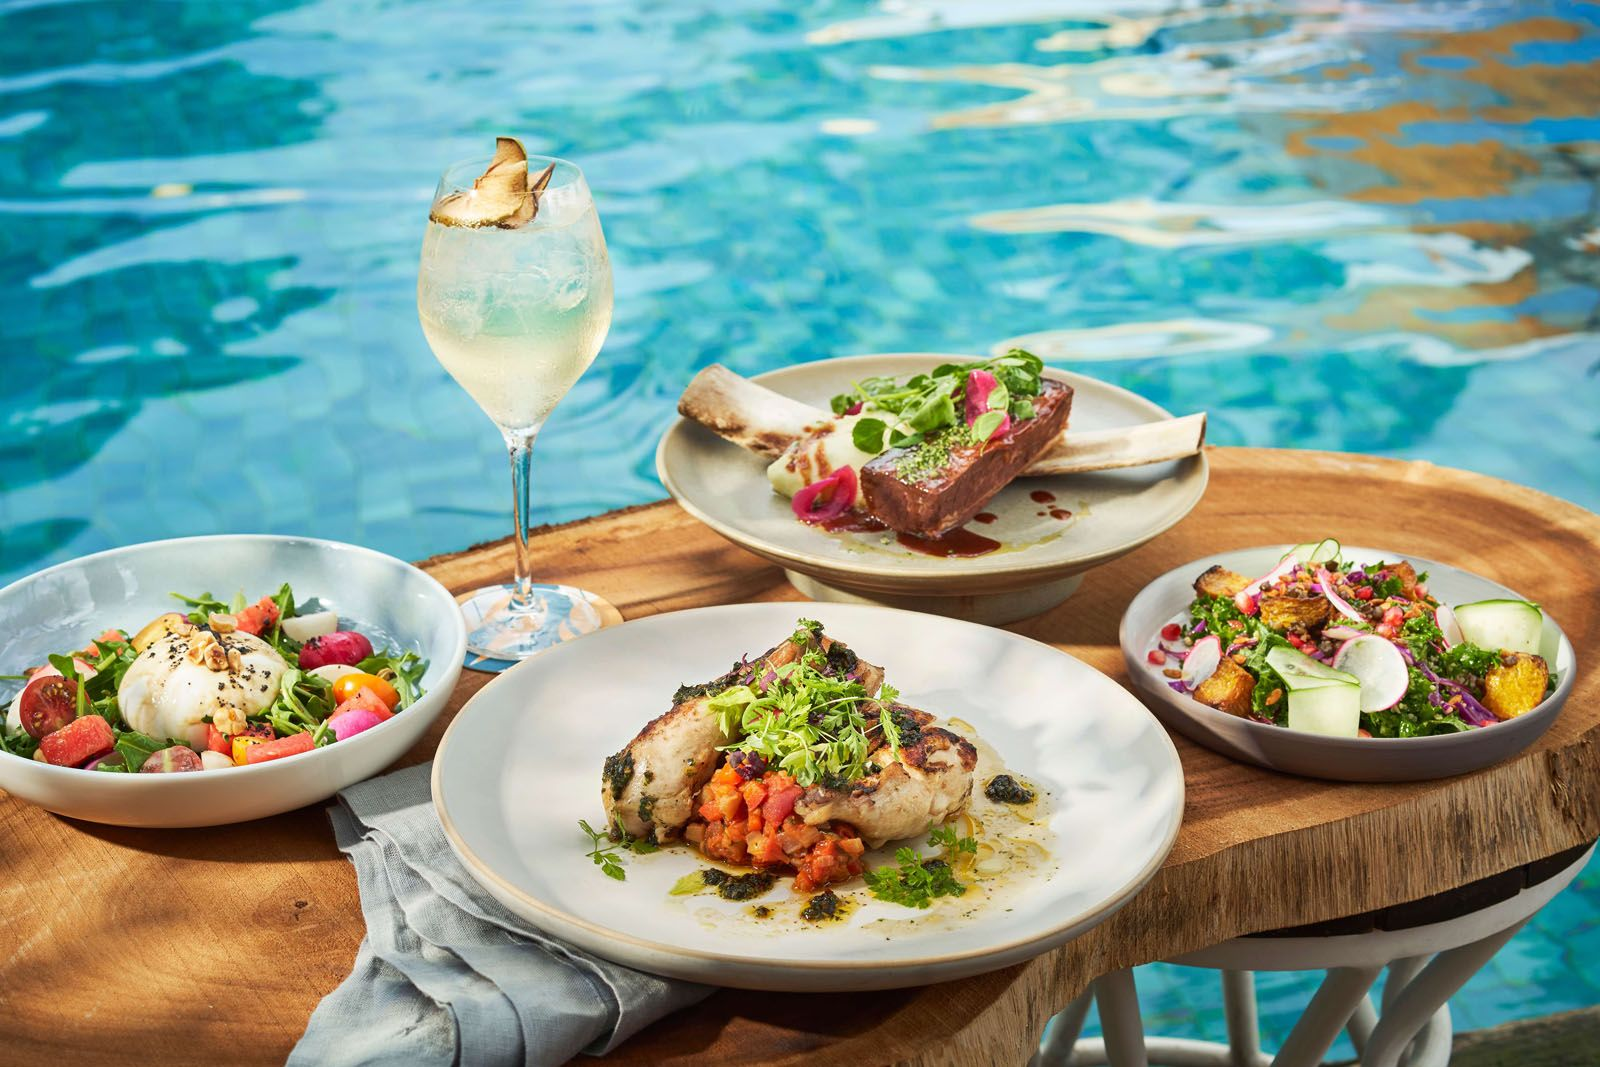 Where To Eat In Singapore This Week: Bedrock Bar & Grill, Beach Road Kitchen, Mezza9, Black Marble, Tanjong Beach Club